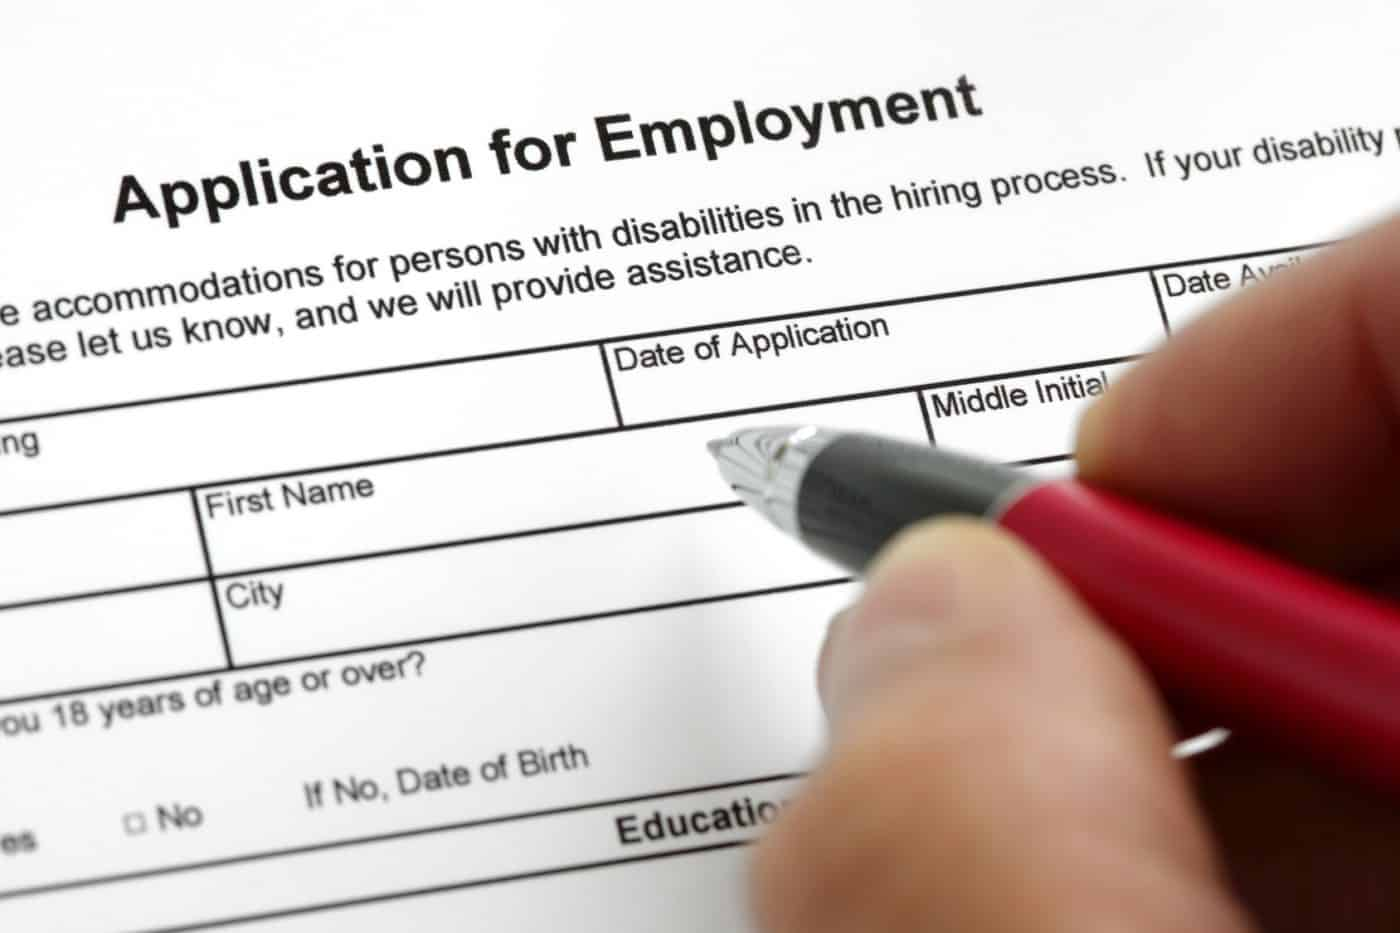 The Ultimate Guide to Completing an Application Form